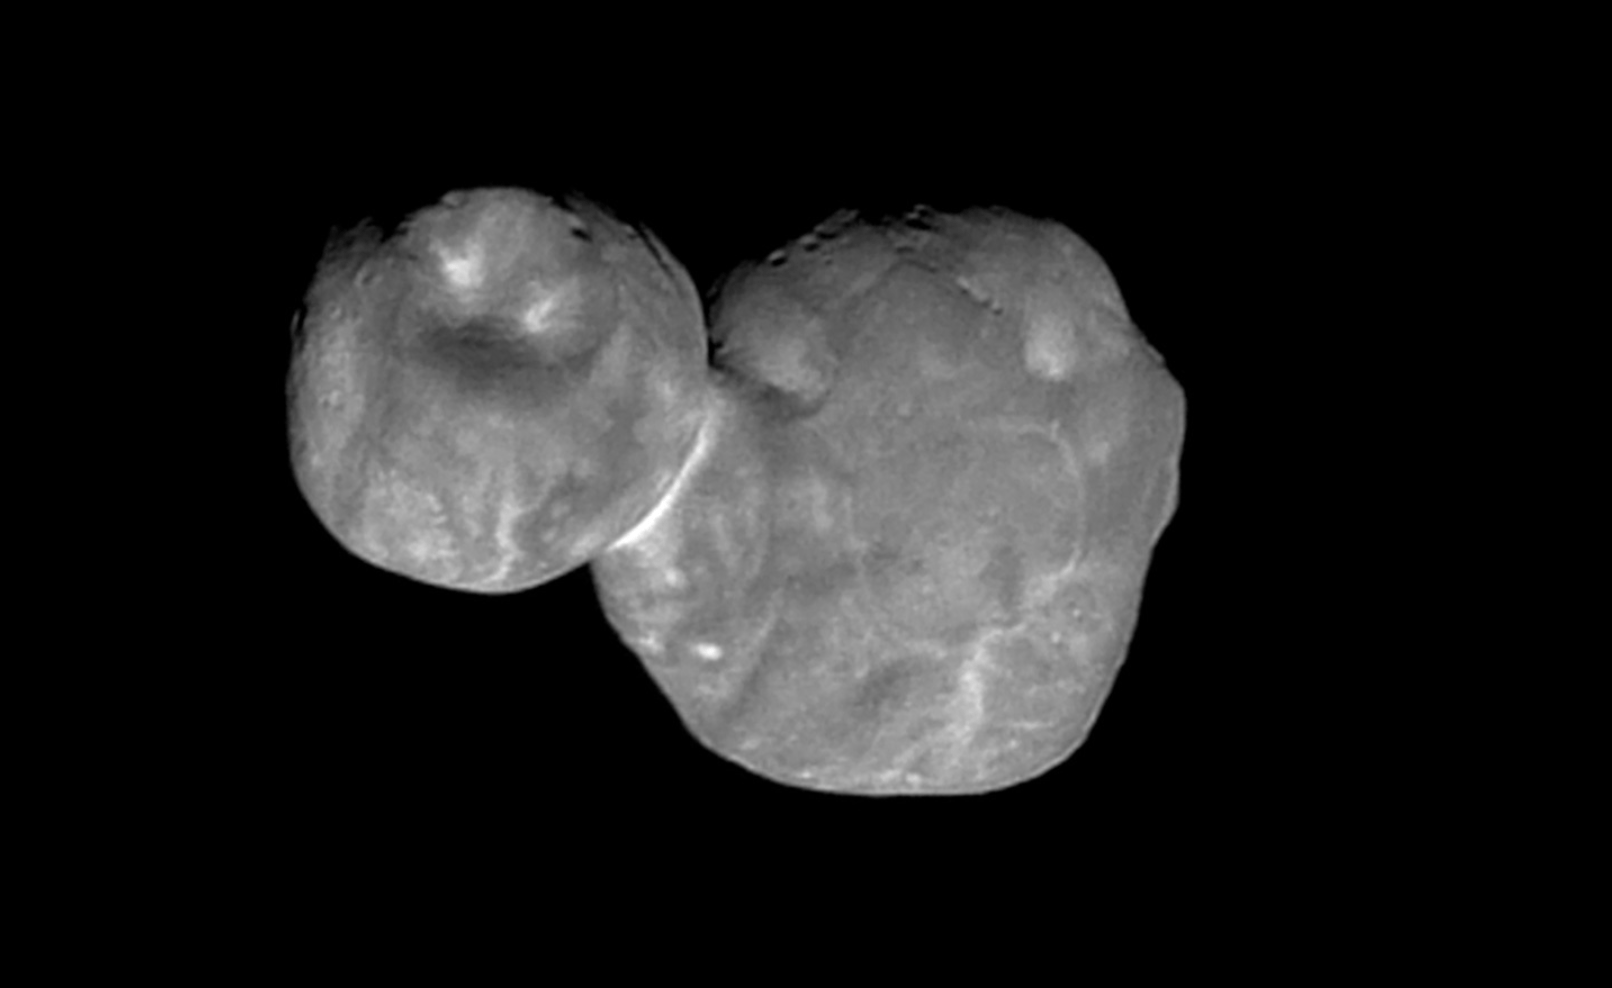 Nasa reveals best ever picture of mysterious 'Nazi dwarf planet' Ultima Thule